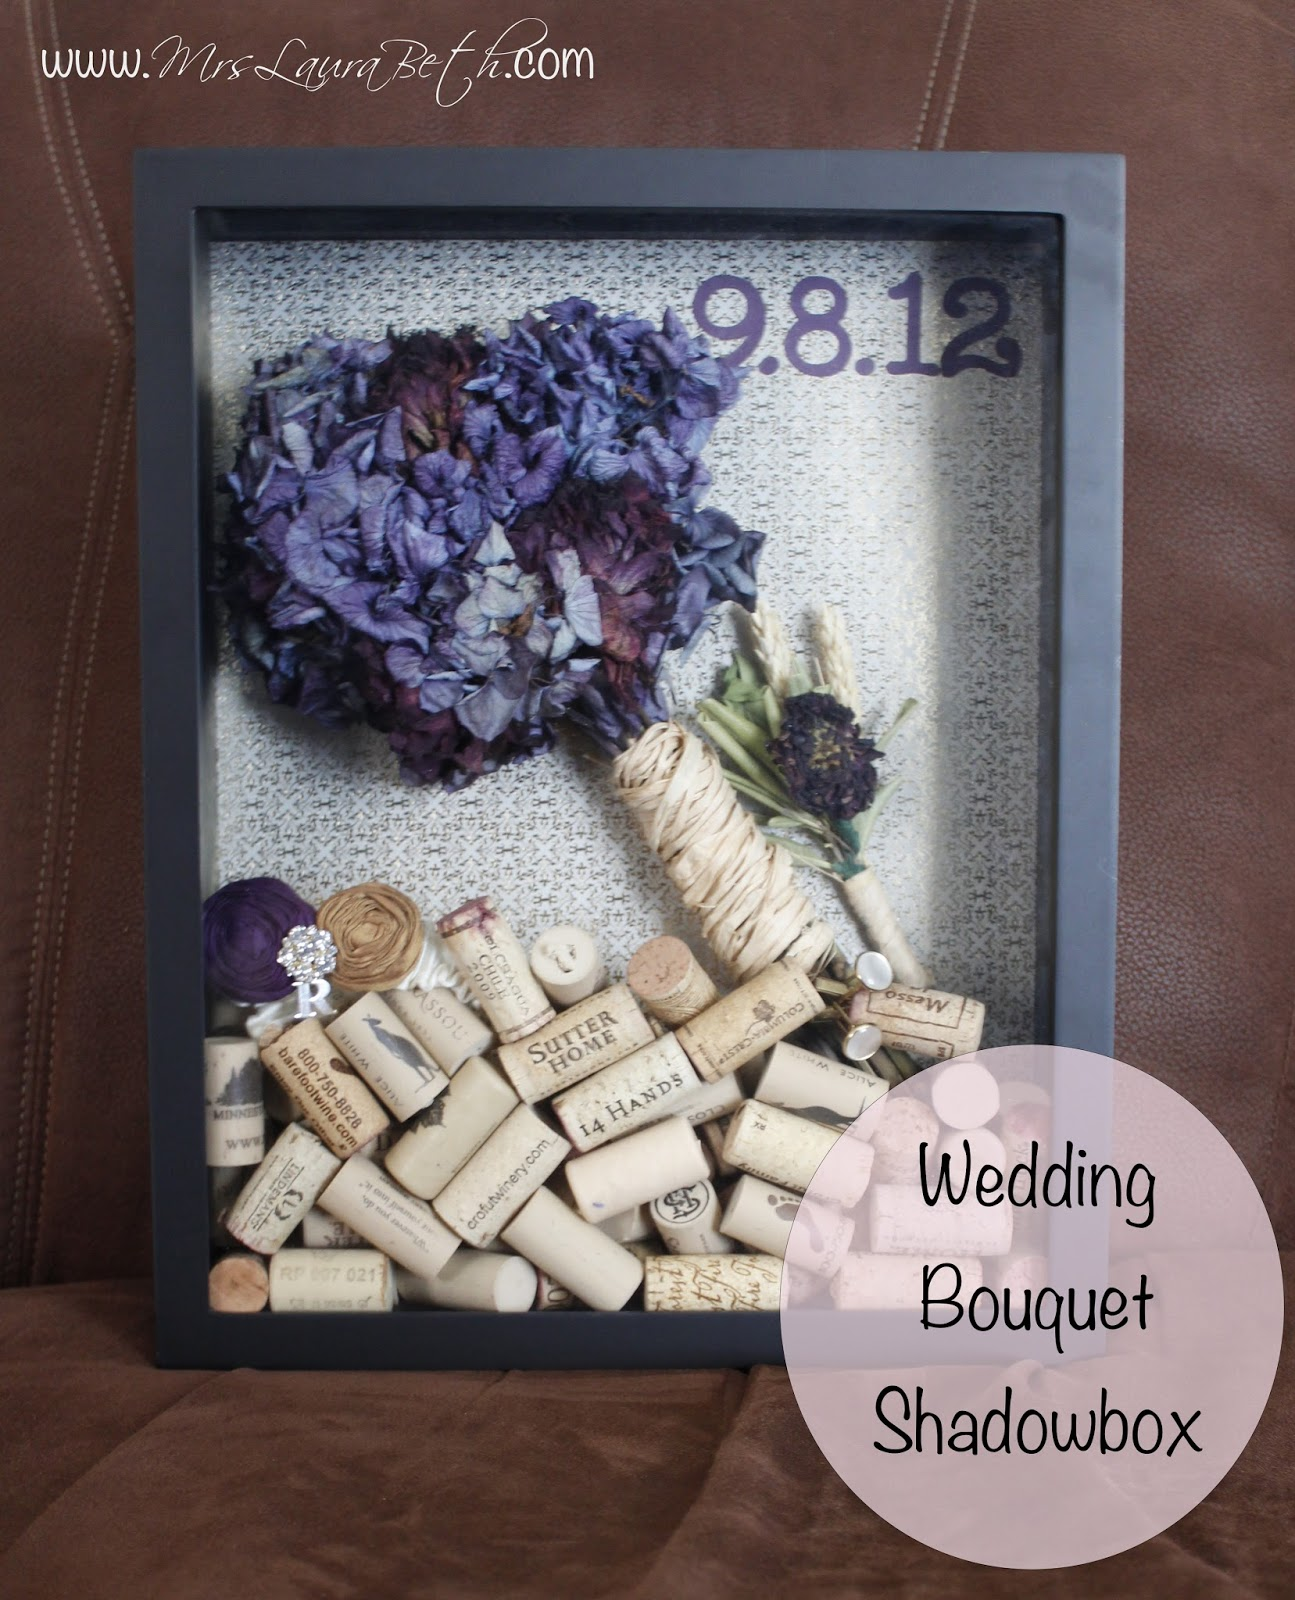 Wedding Bouquet Shadowbox